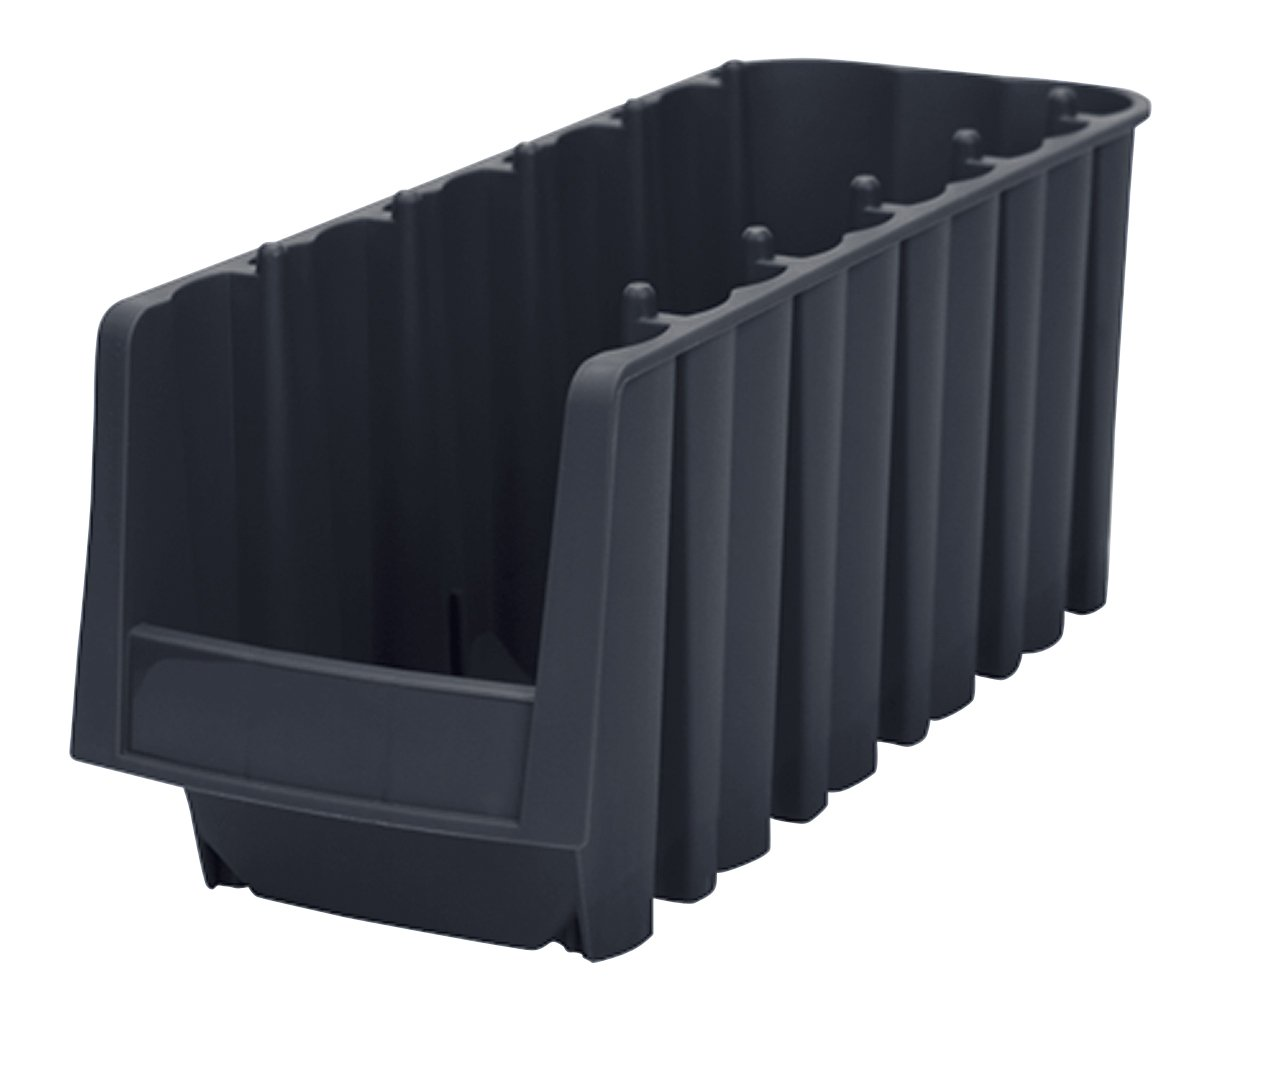 Akro-Mils 30718 Economy Stacking Nesting Plastic Storage Bin, 11-7/8-Inch Long by 8-3/8-Inch Wide by 5-Inch High, Black, Case of 8